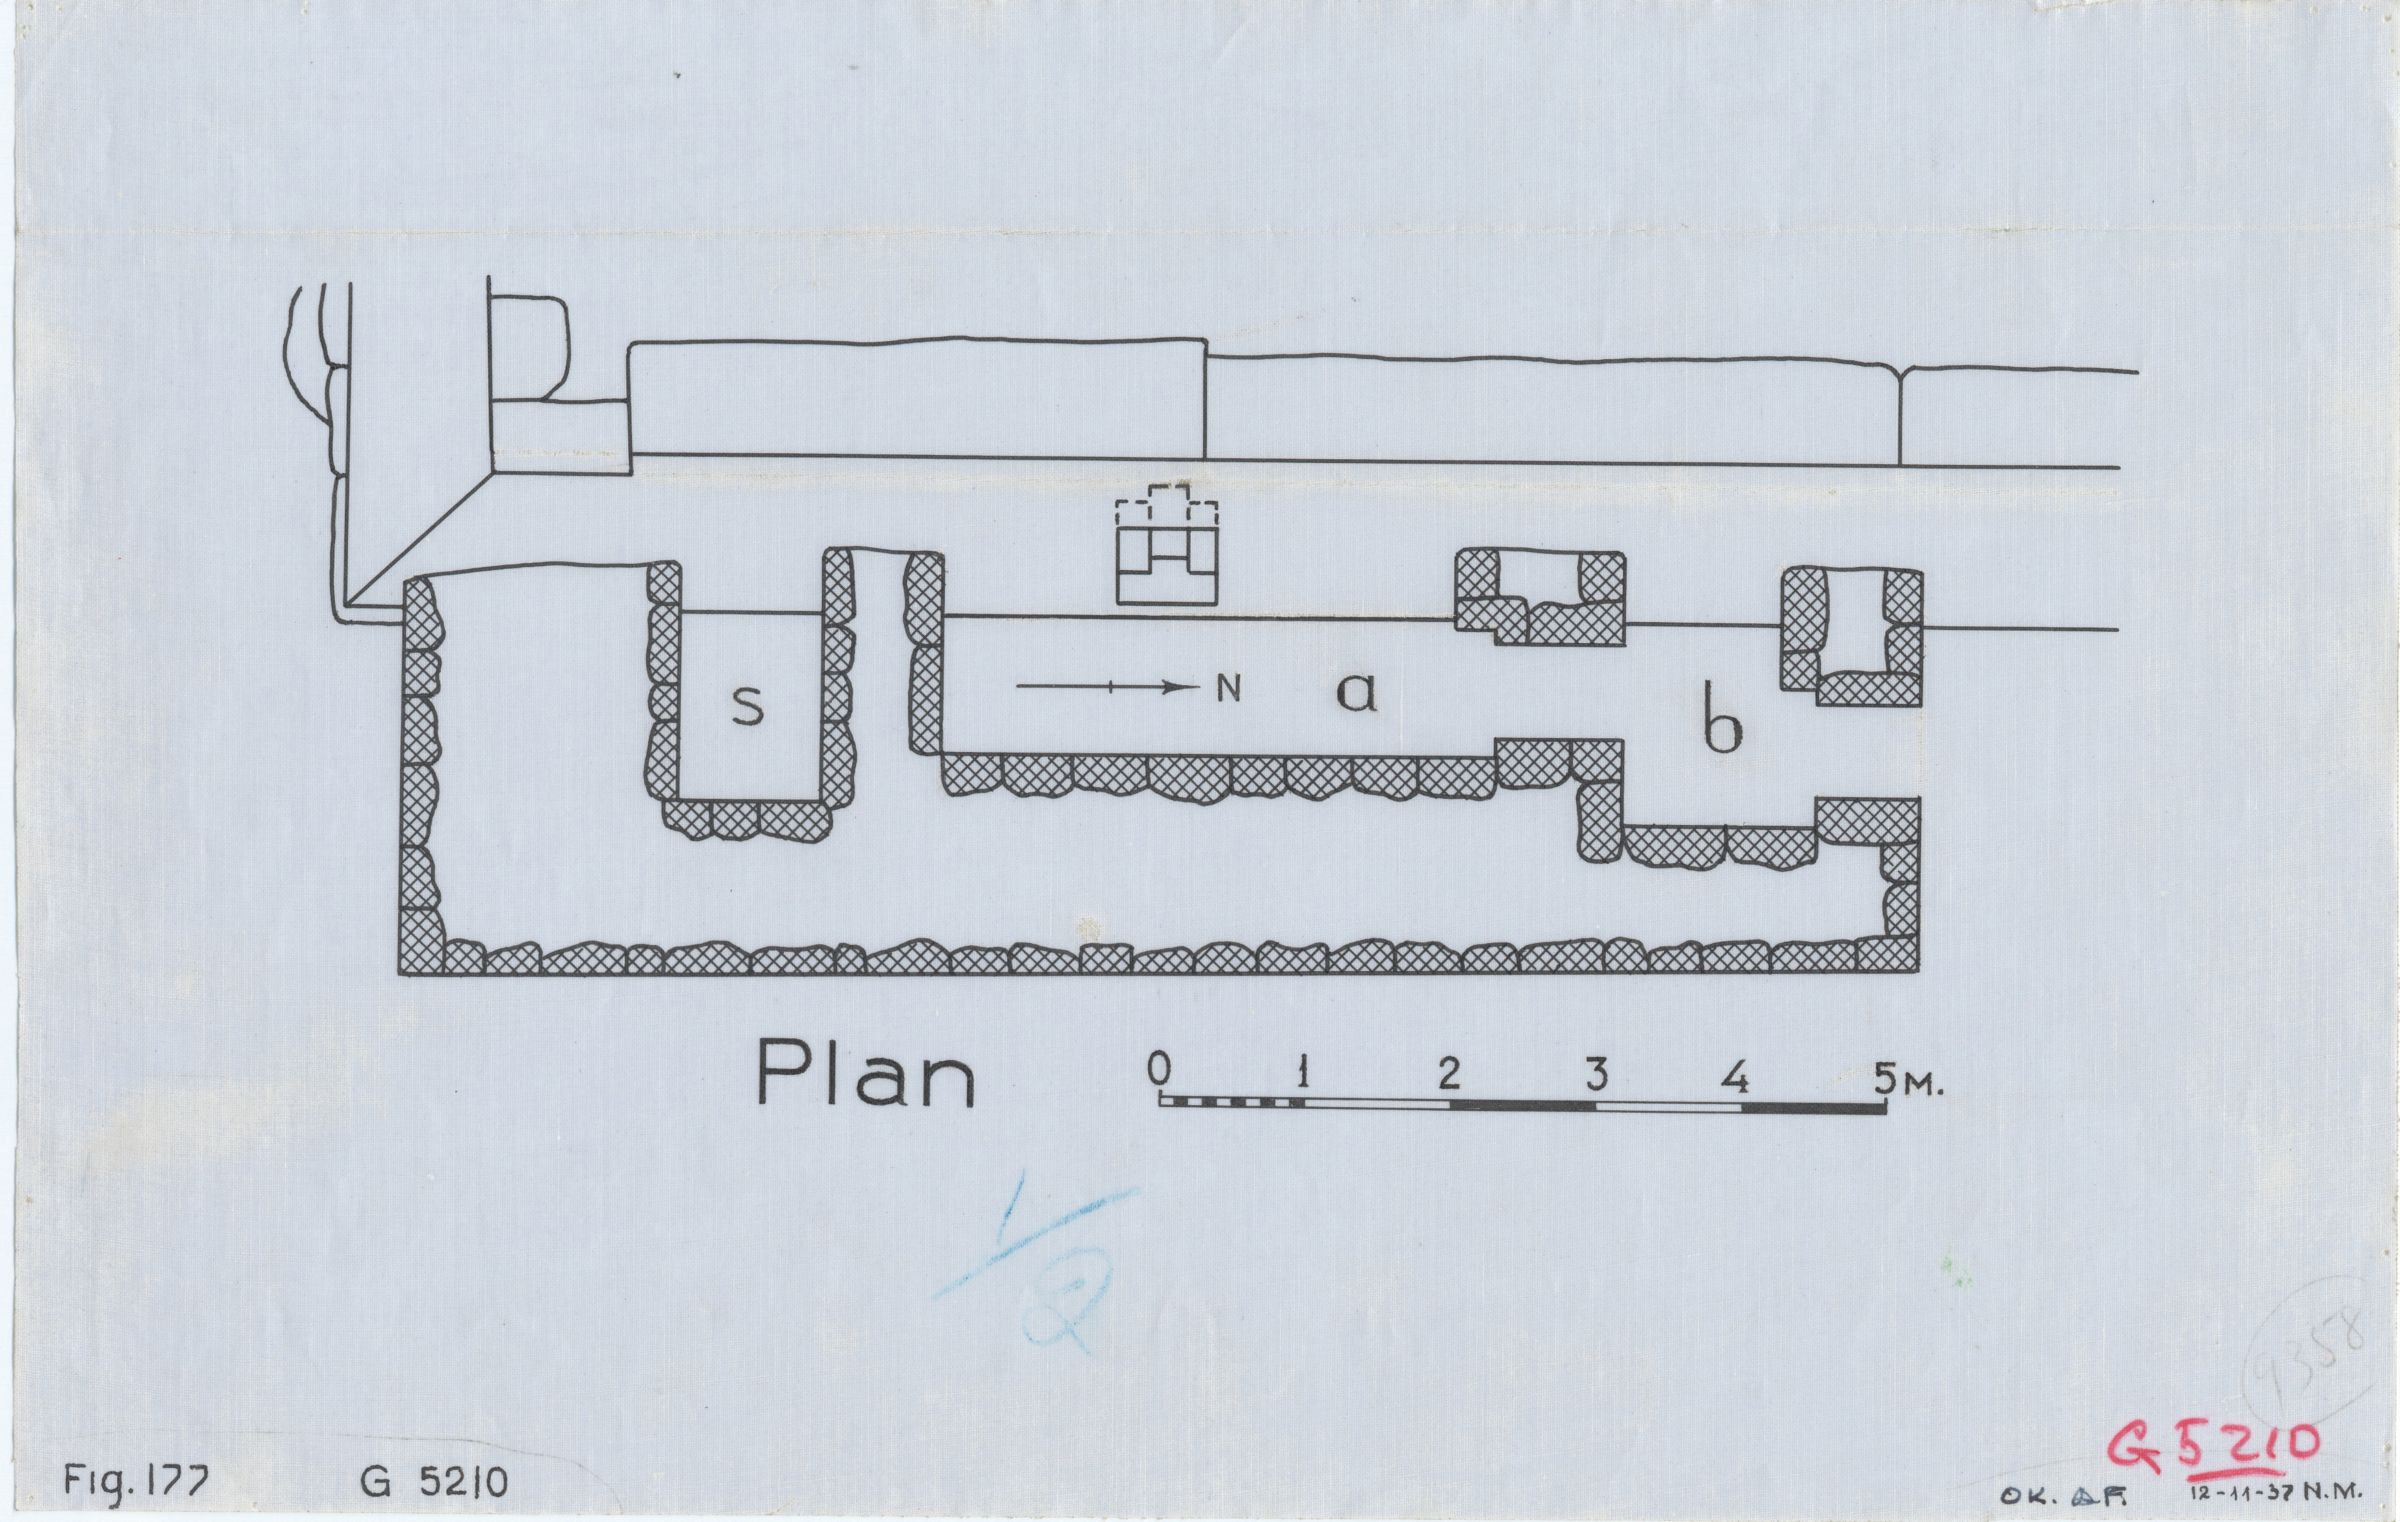 Maps and plans: G 5210, Plan of chapel